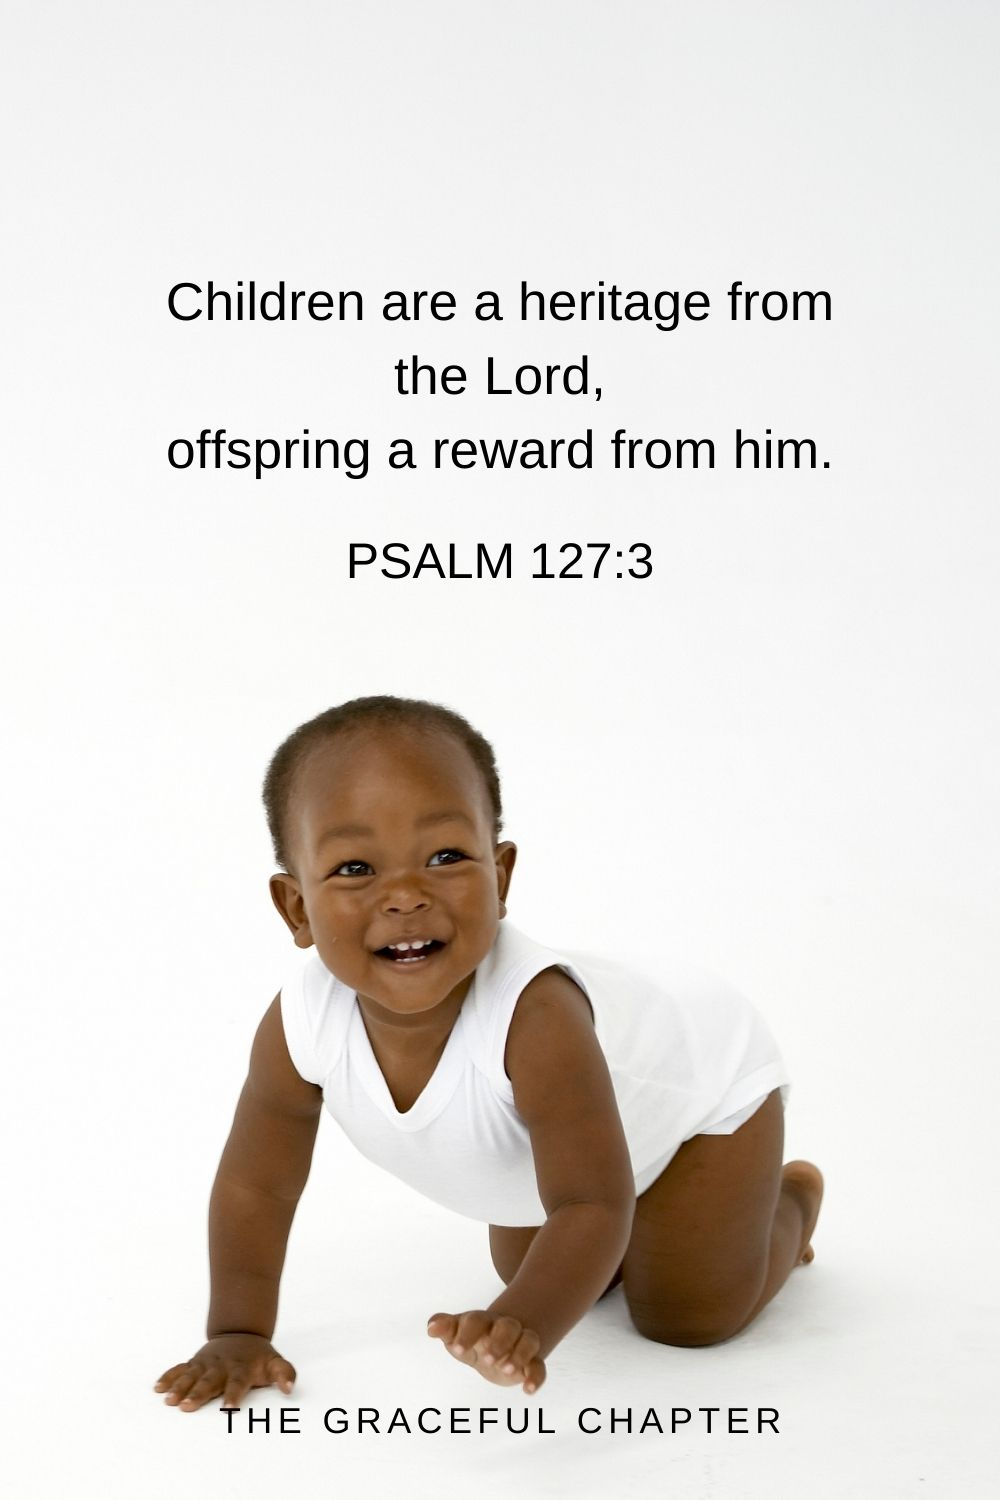 Children are a heritage from the Lord, offspring a reward from him. Psalm 127:3